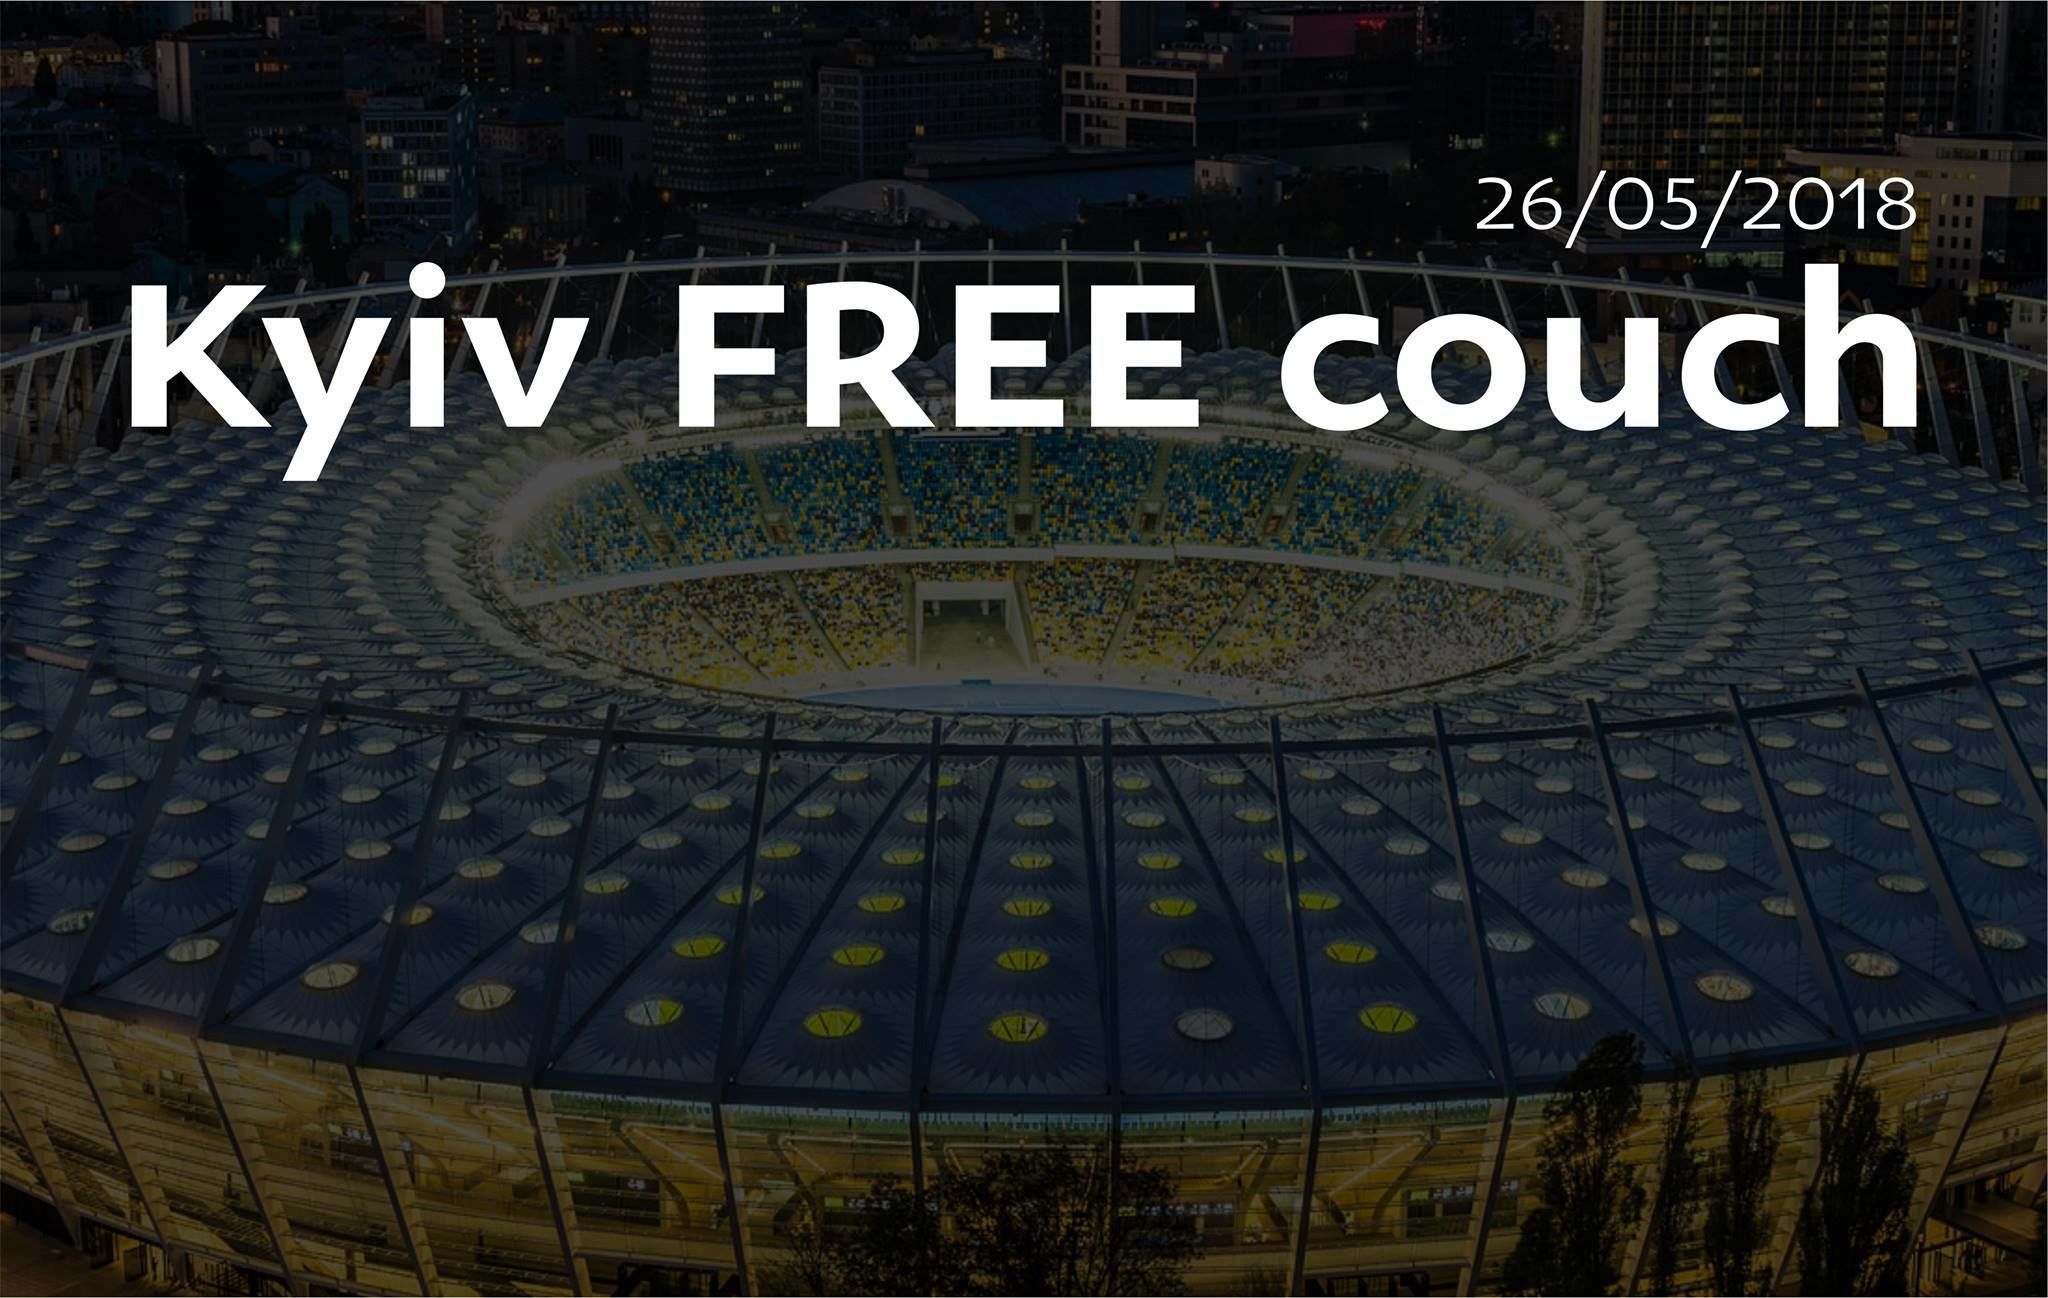 kyiv free couch